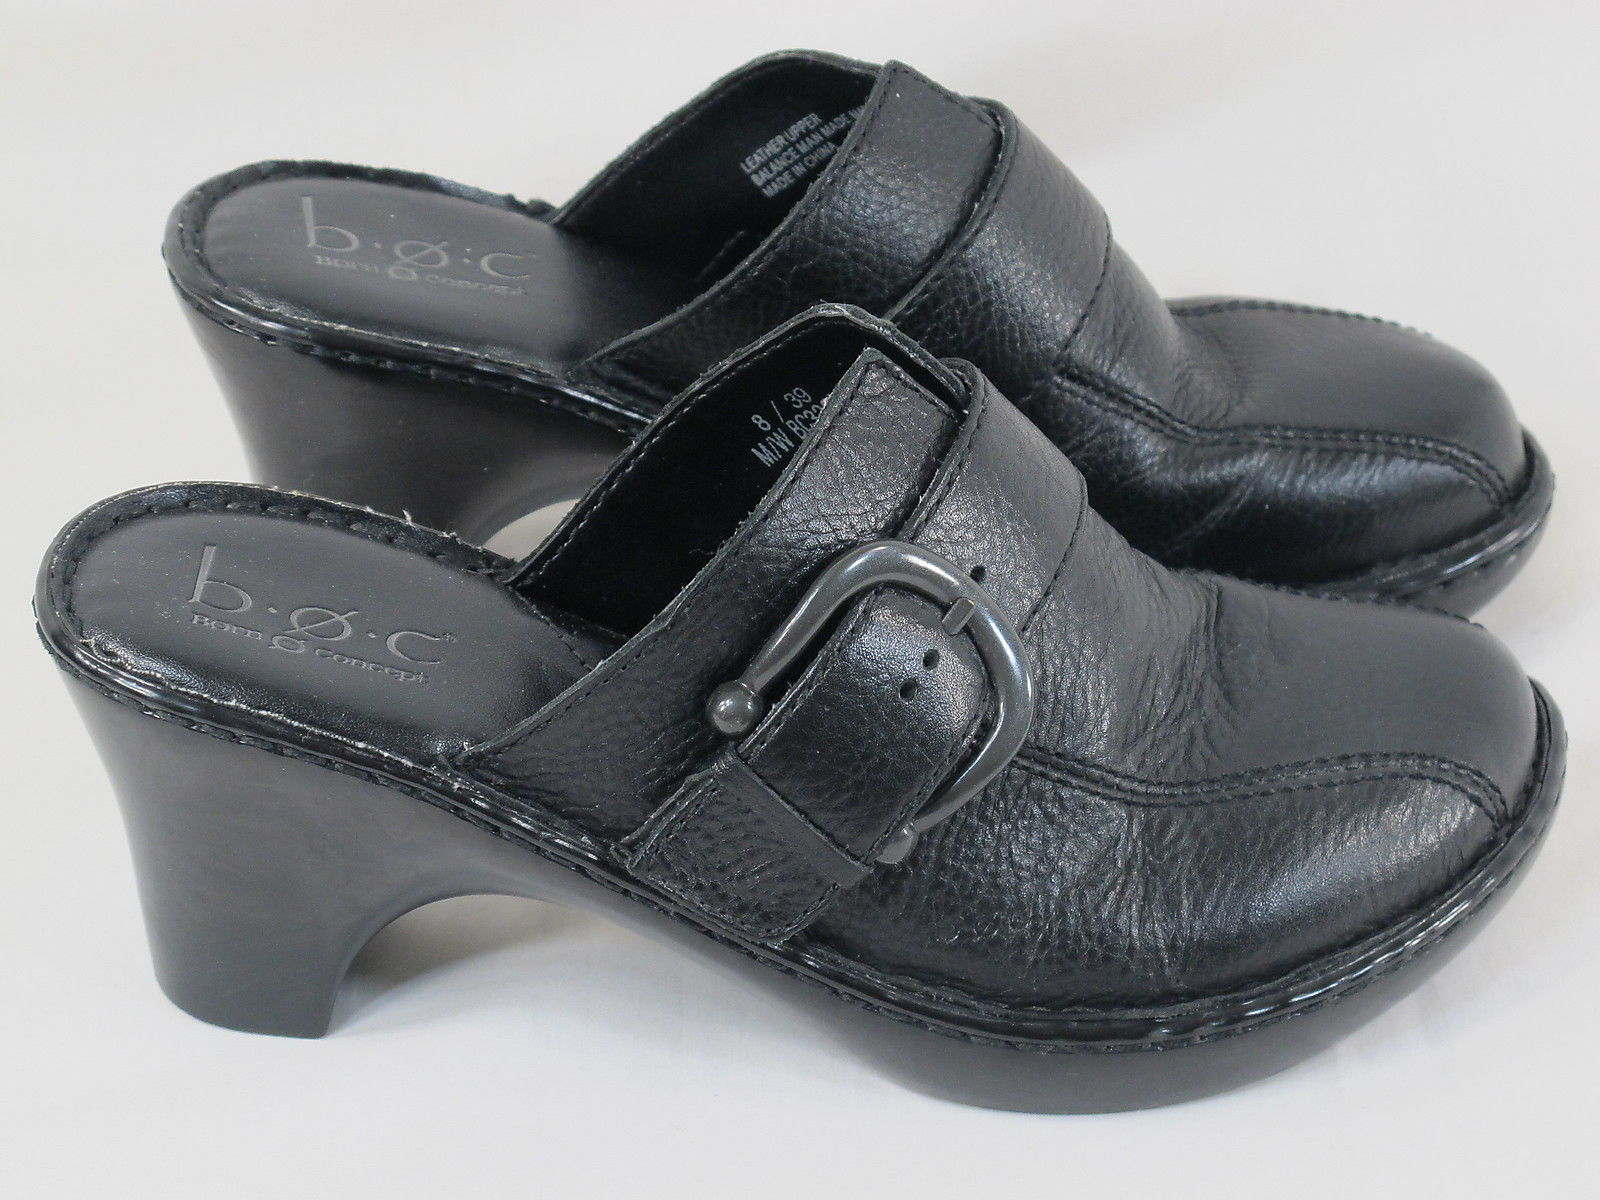 BORN Black Leather Chunky Platform Mules Size 8 M US Excellent Condition - $32.72 CAD